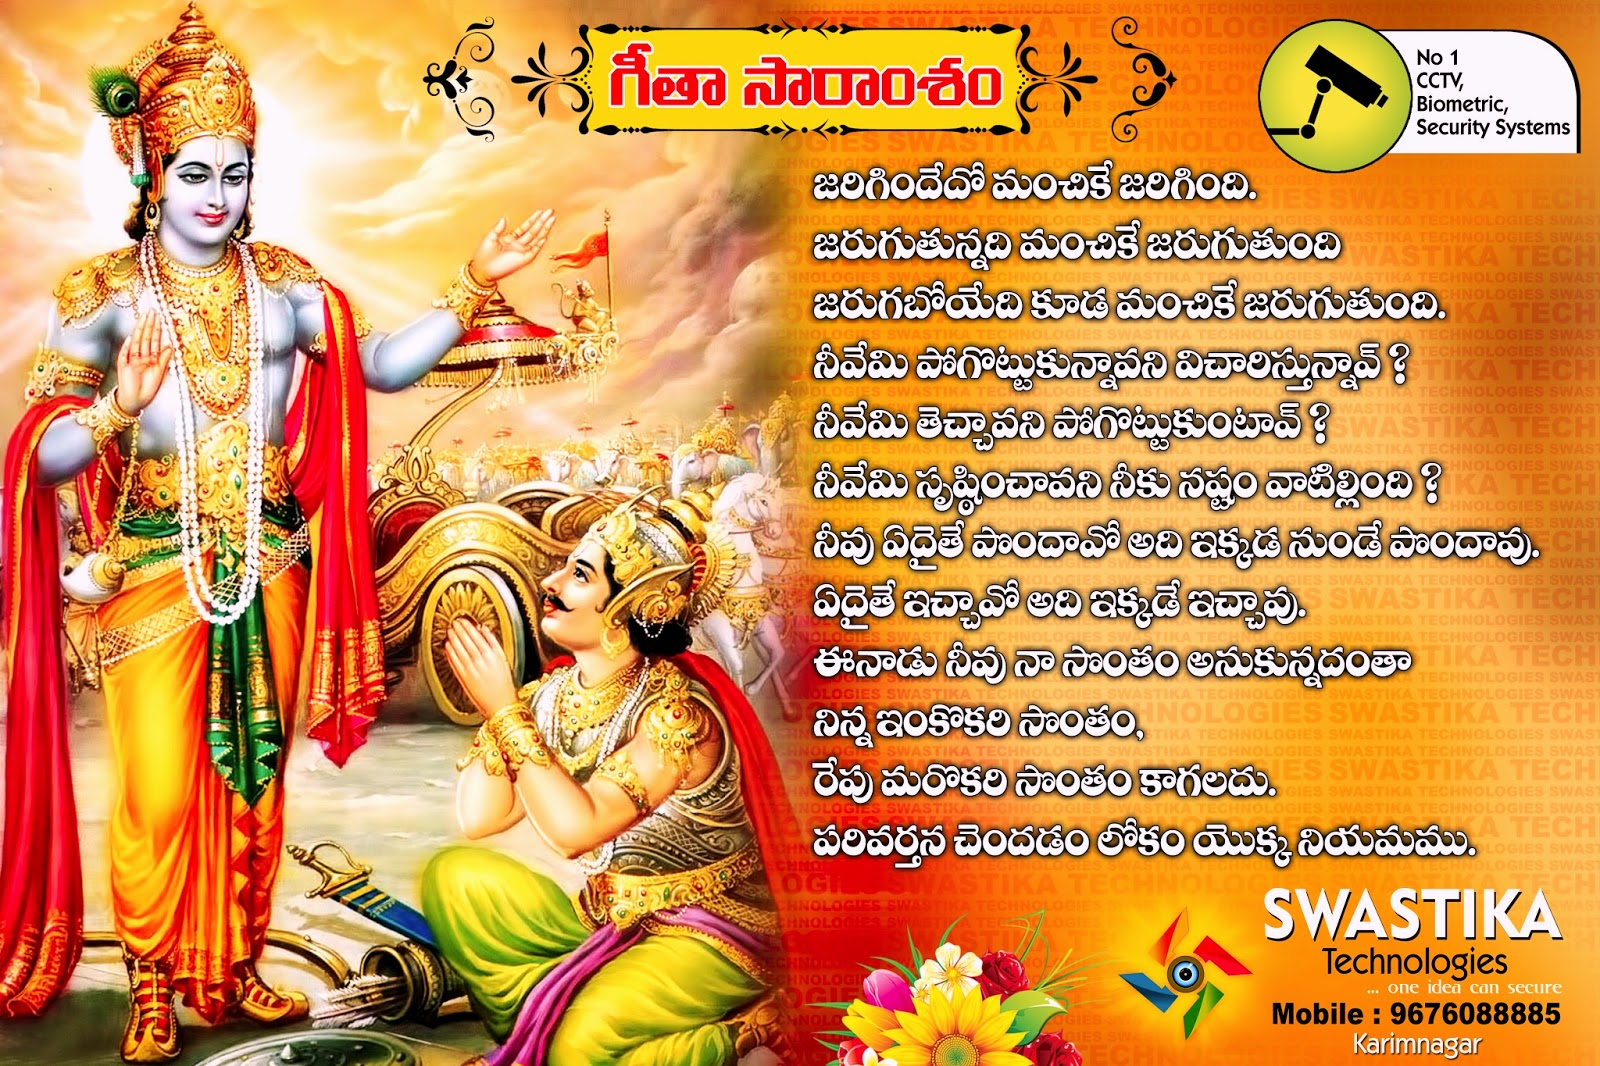 Where can I download Mahabharata complete story in Telugu - Quora